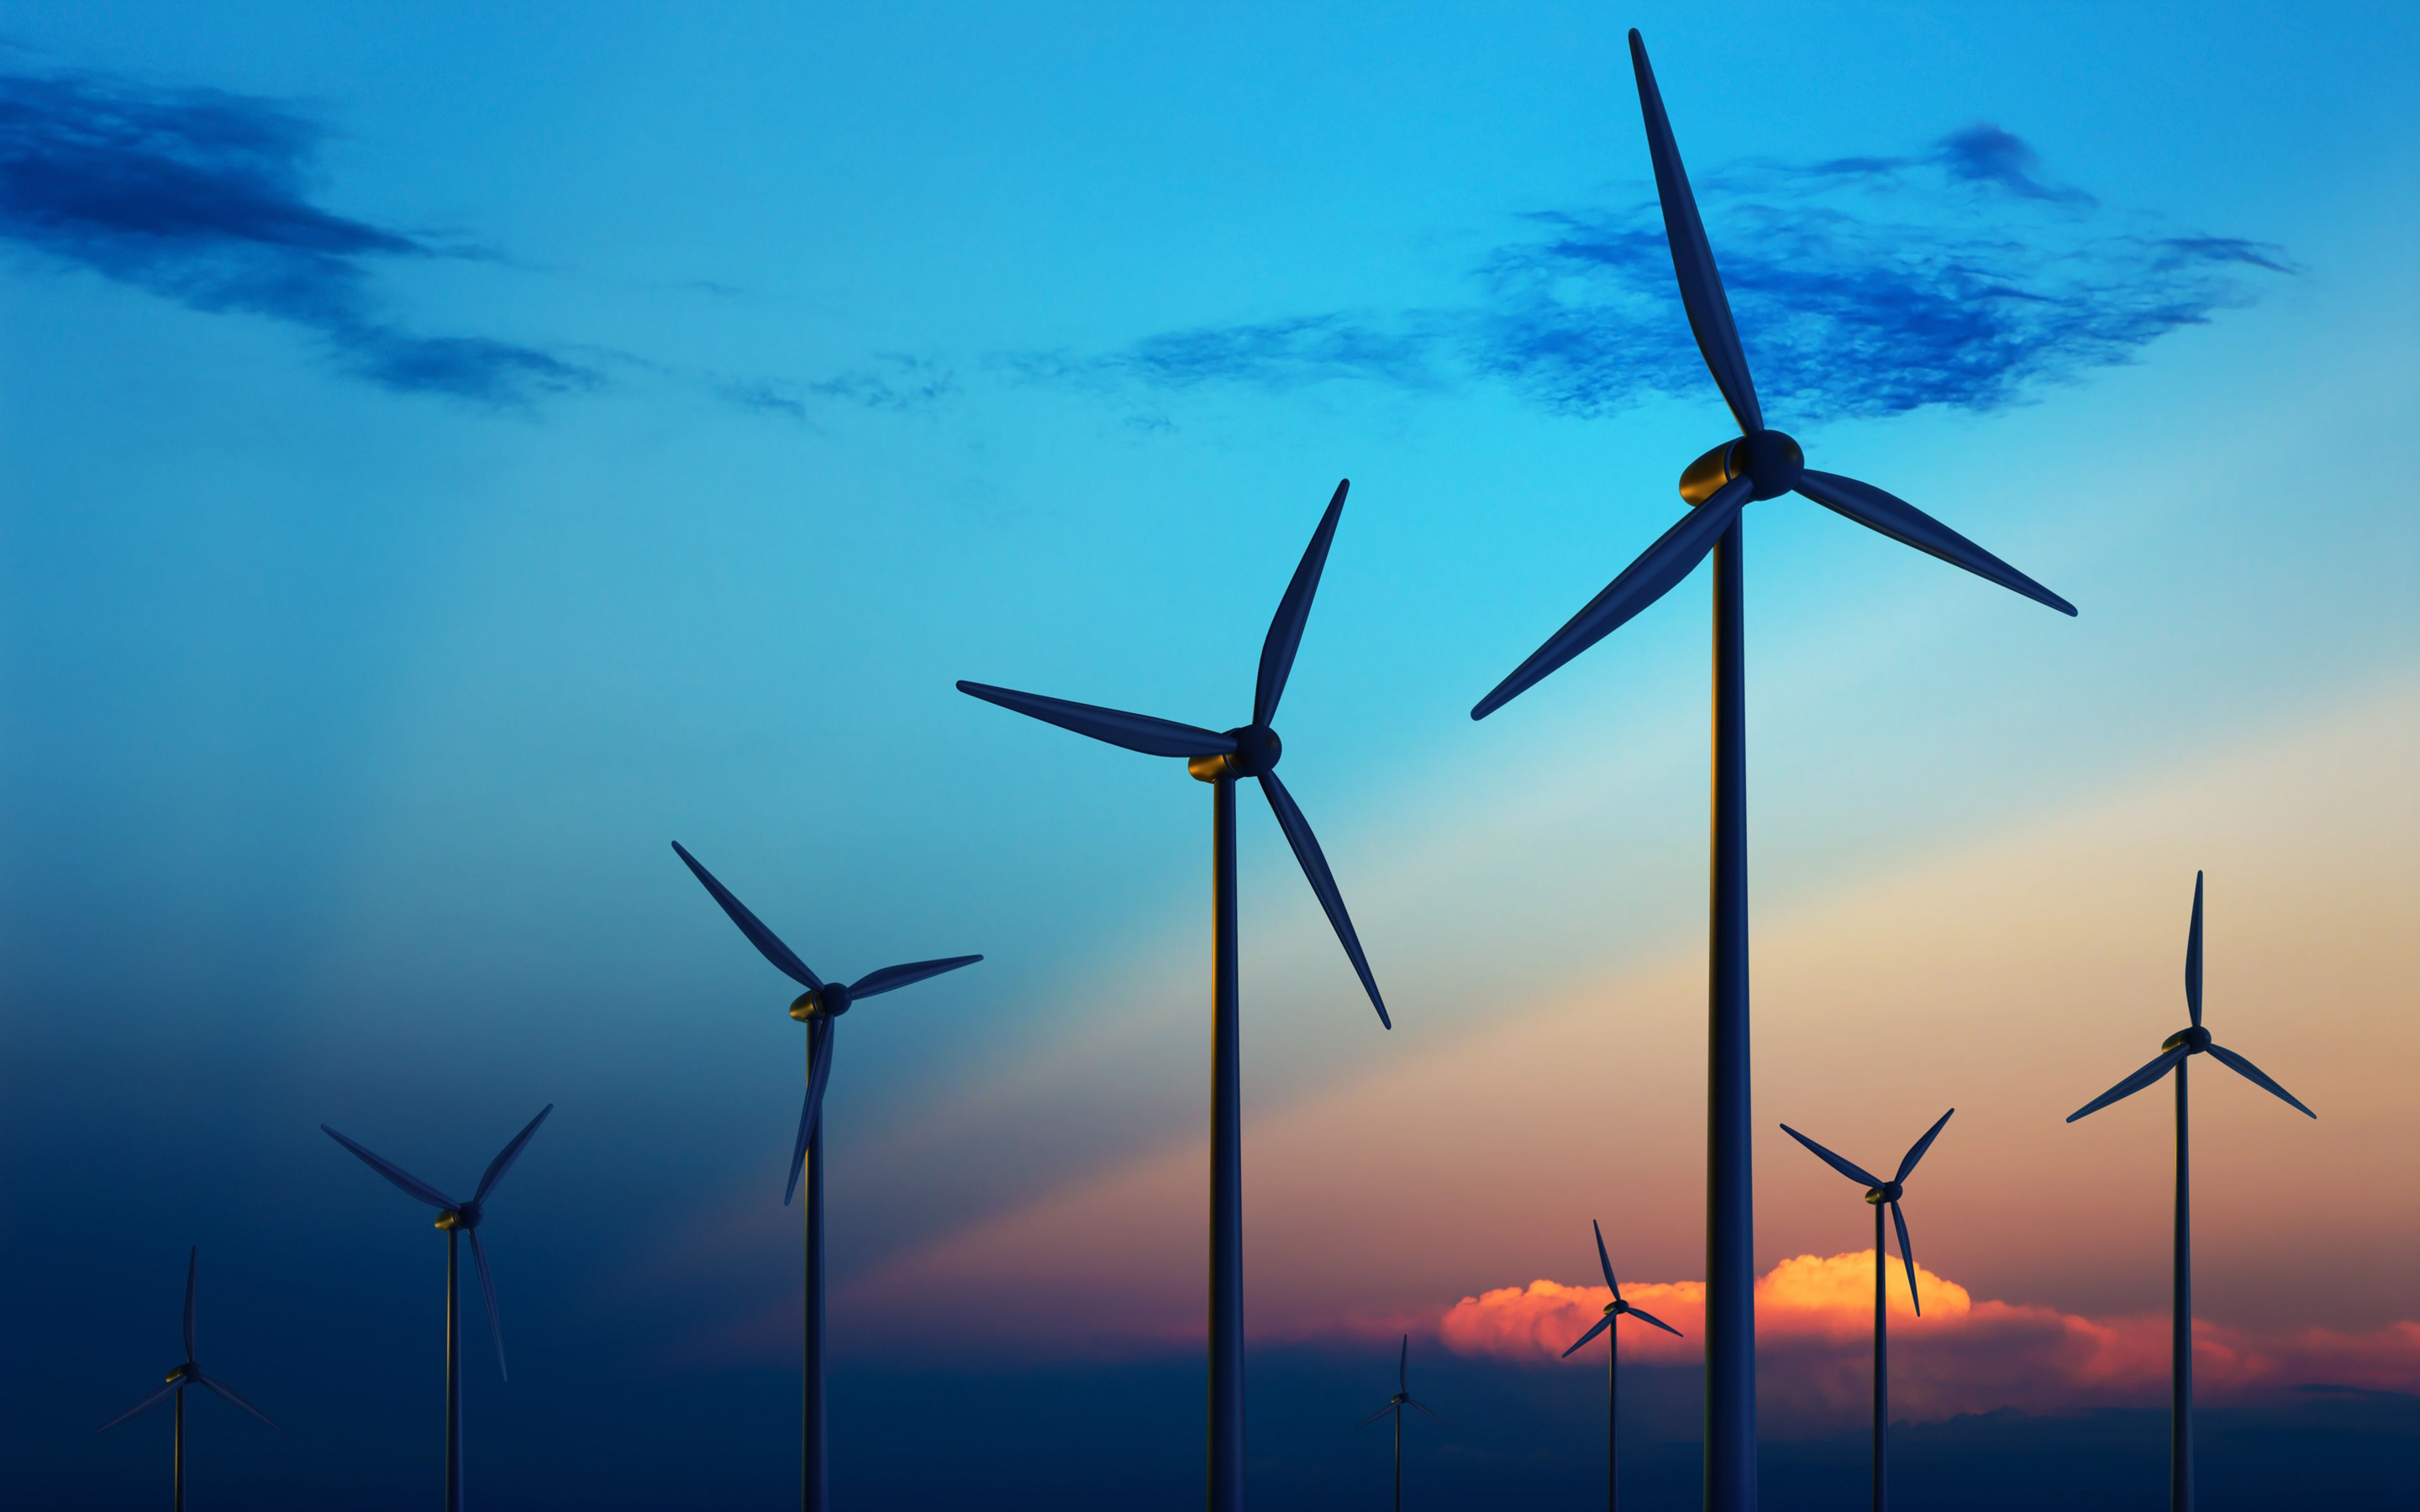 116 Wind Turbine Hd Wallpapers Background Images